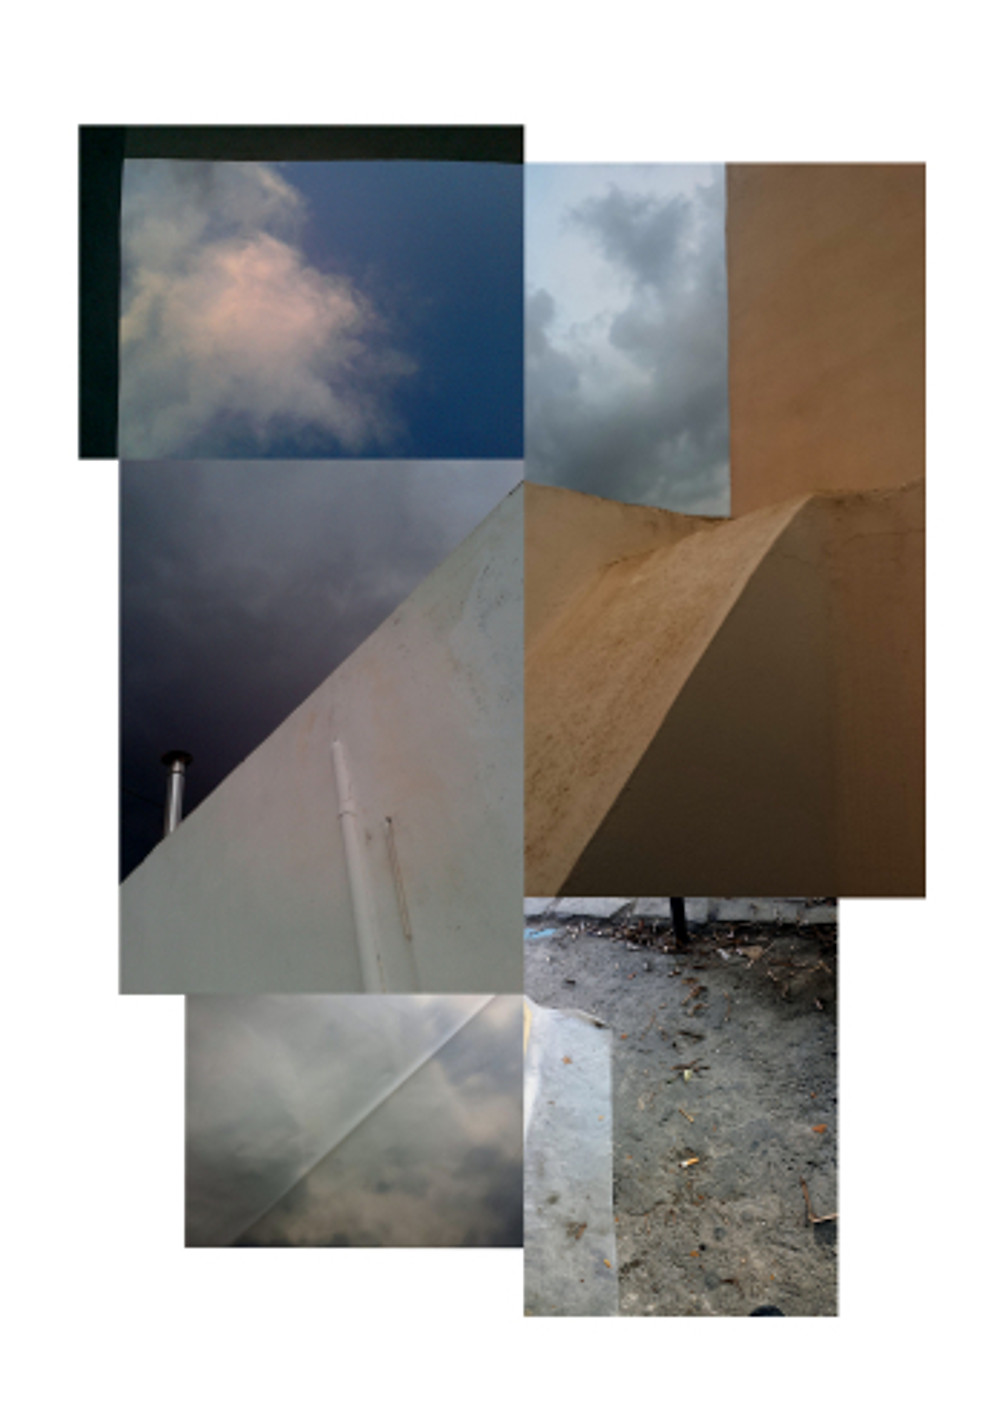 10 karl & rene - reconstruct the construction photo series (photo manipulation, digital collage)